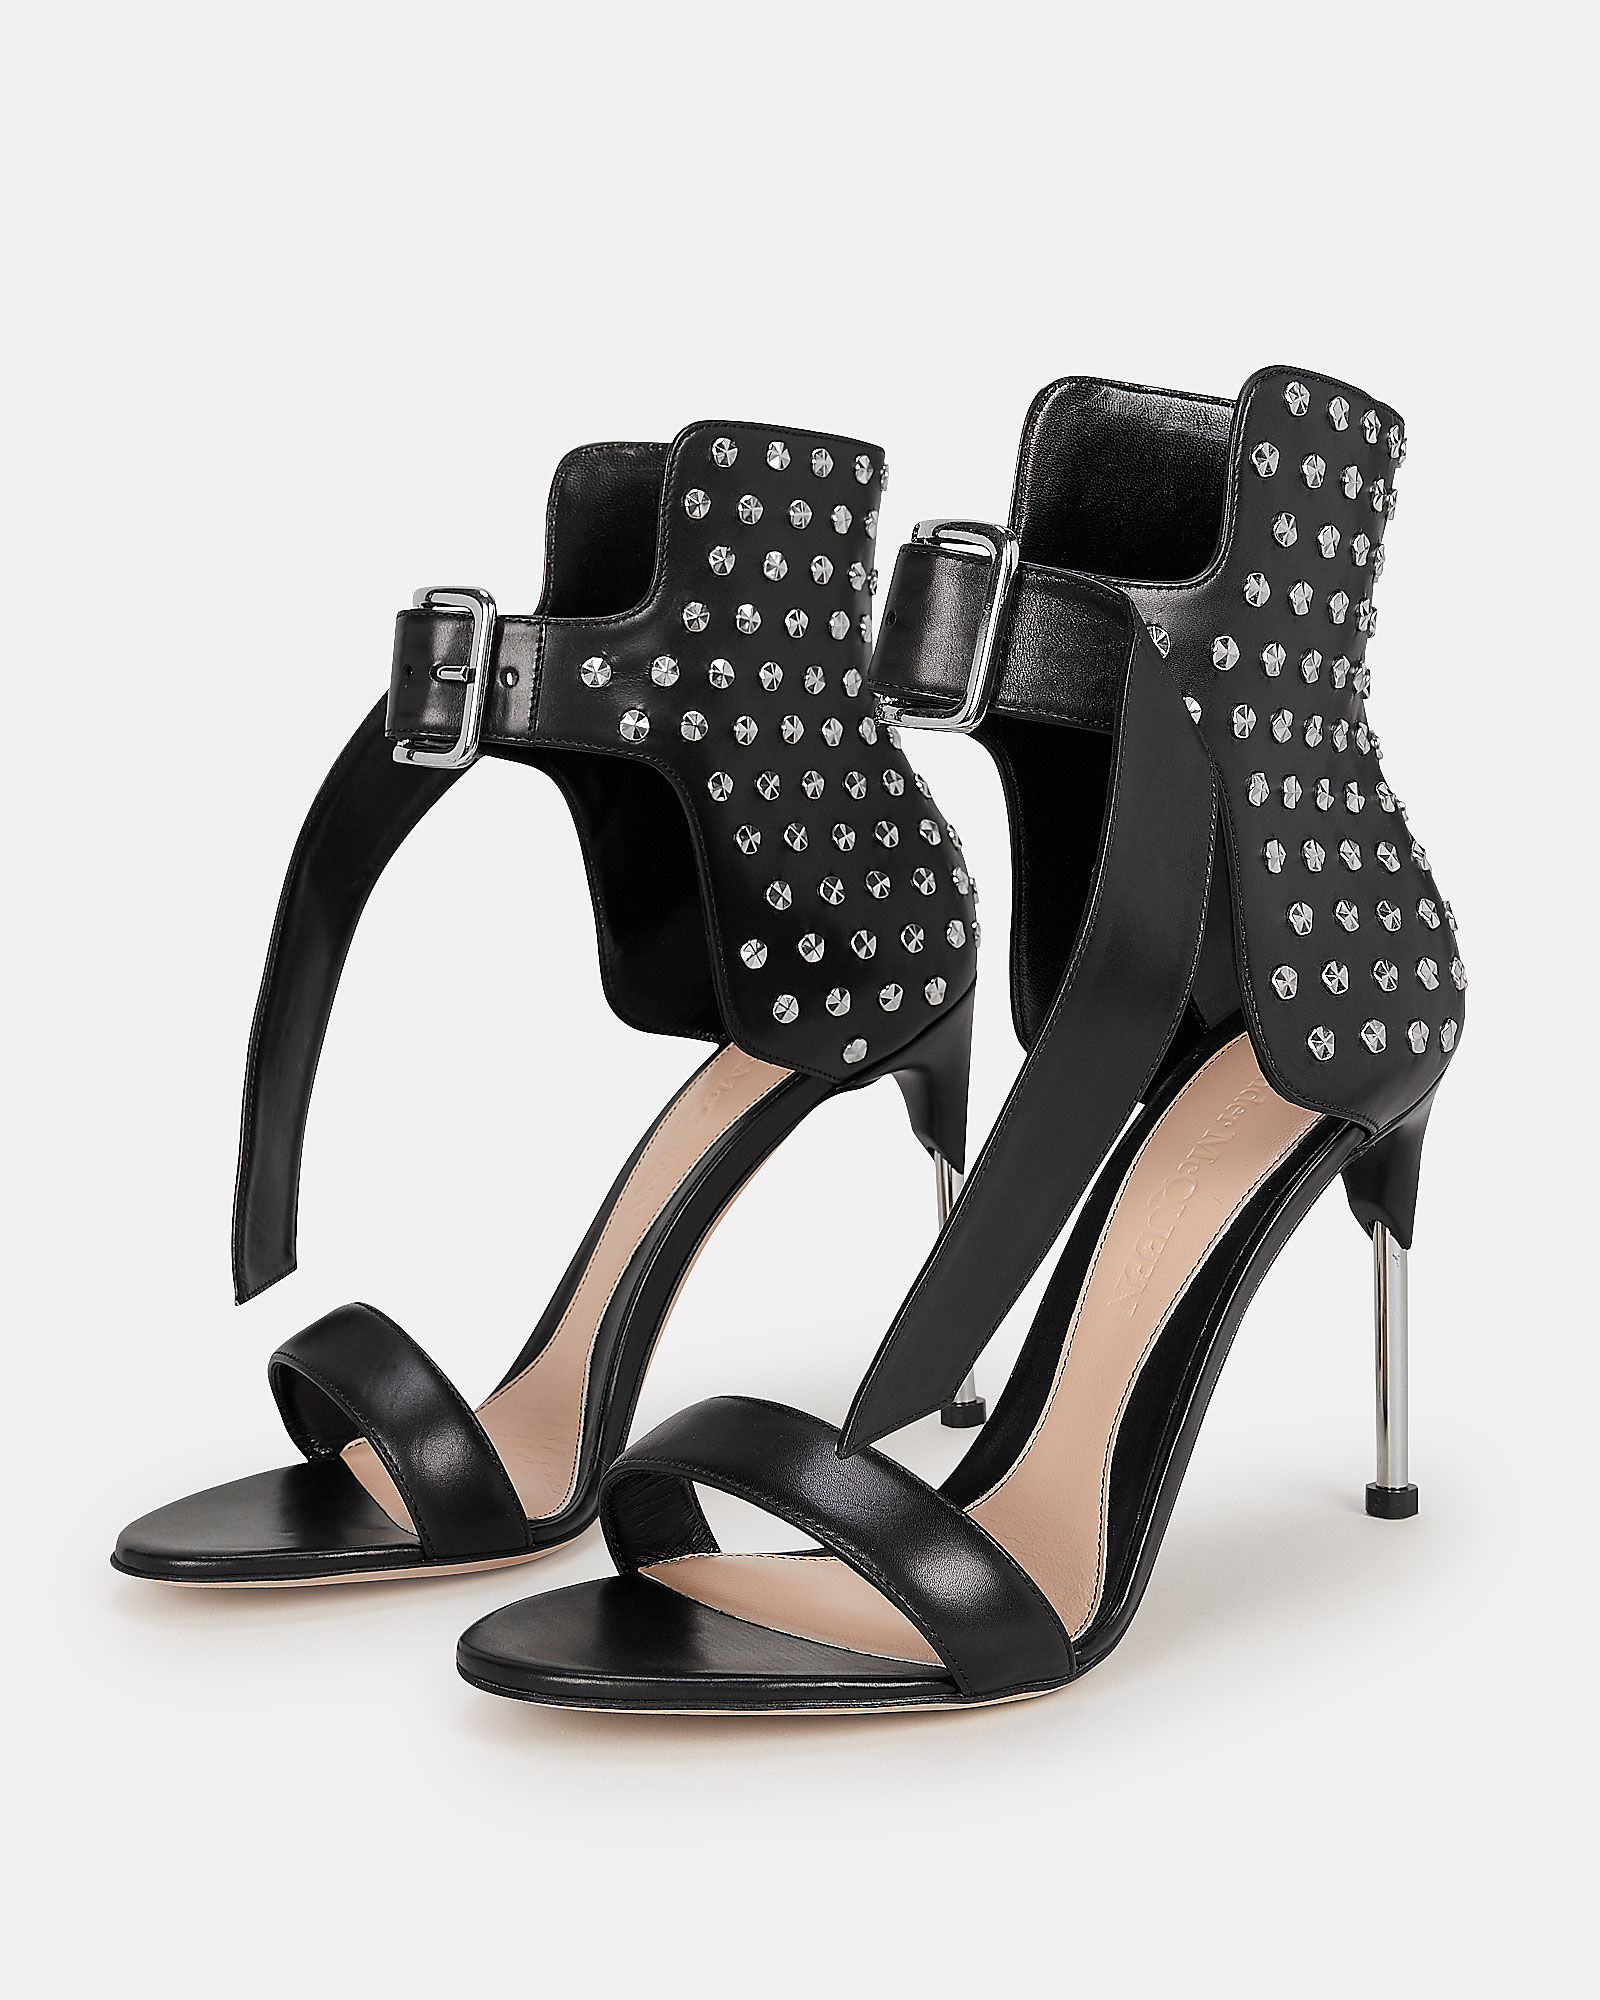 Studded Black Leather Sandals, BLACK, hi-res